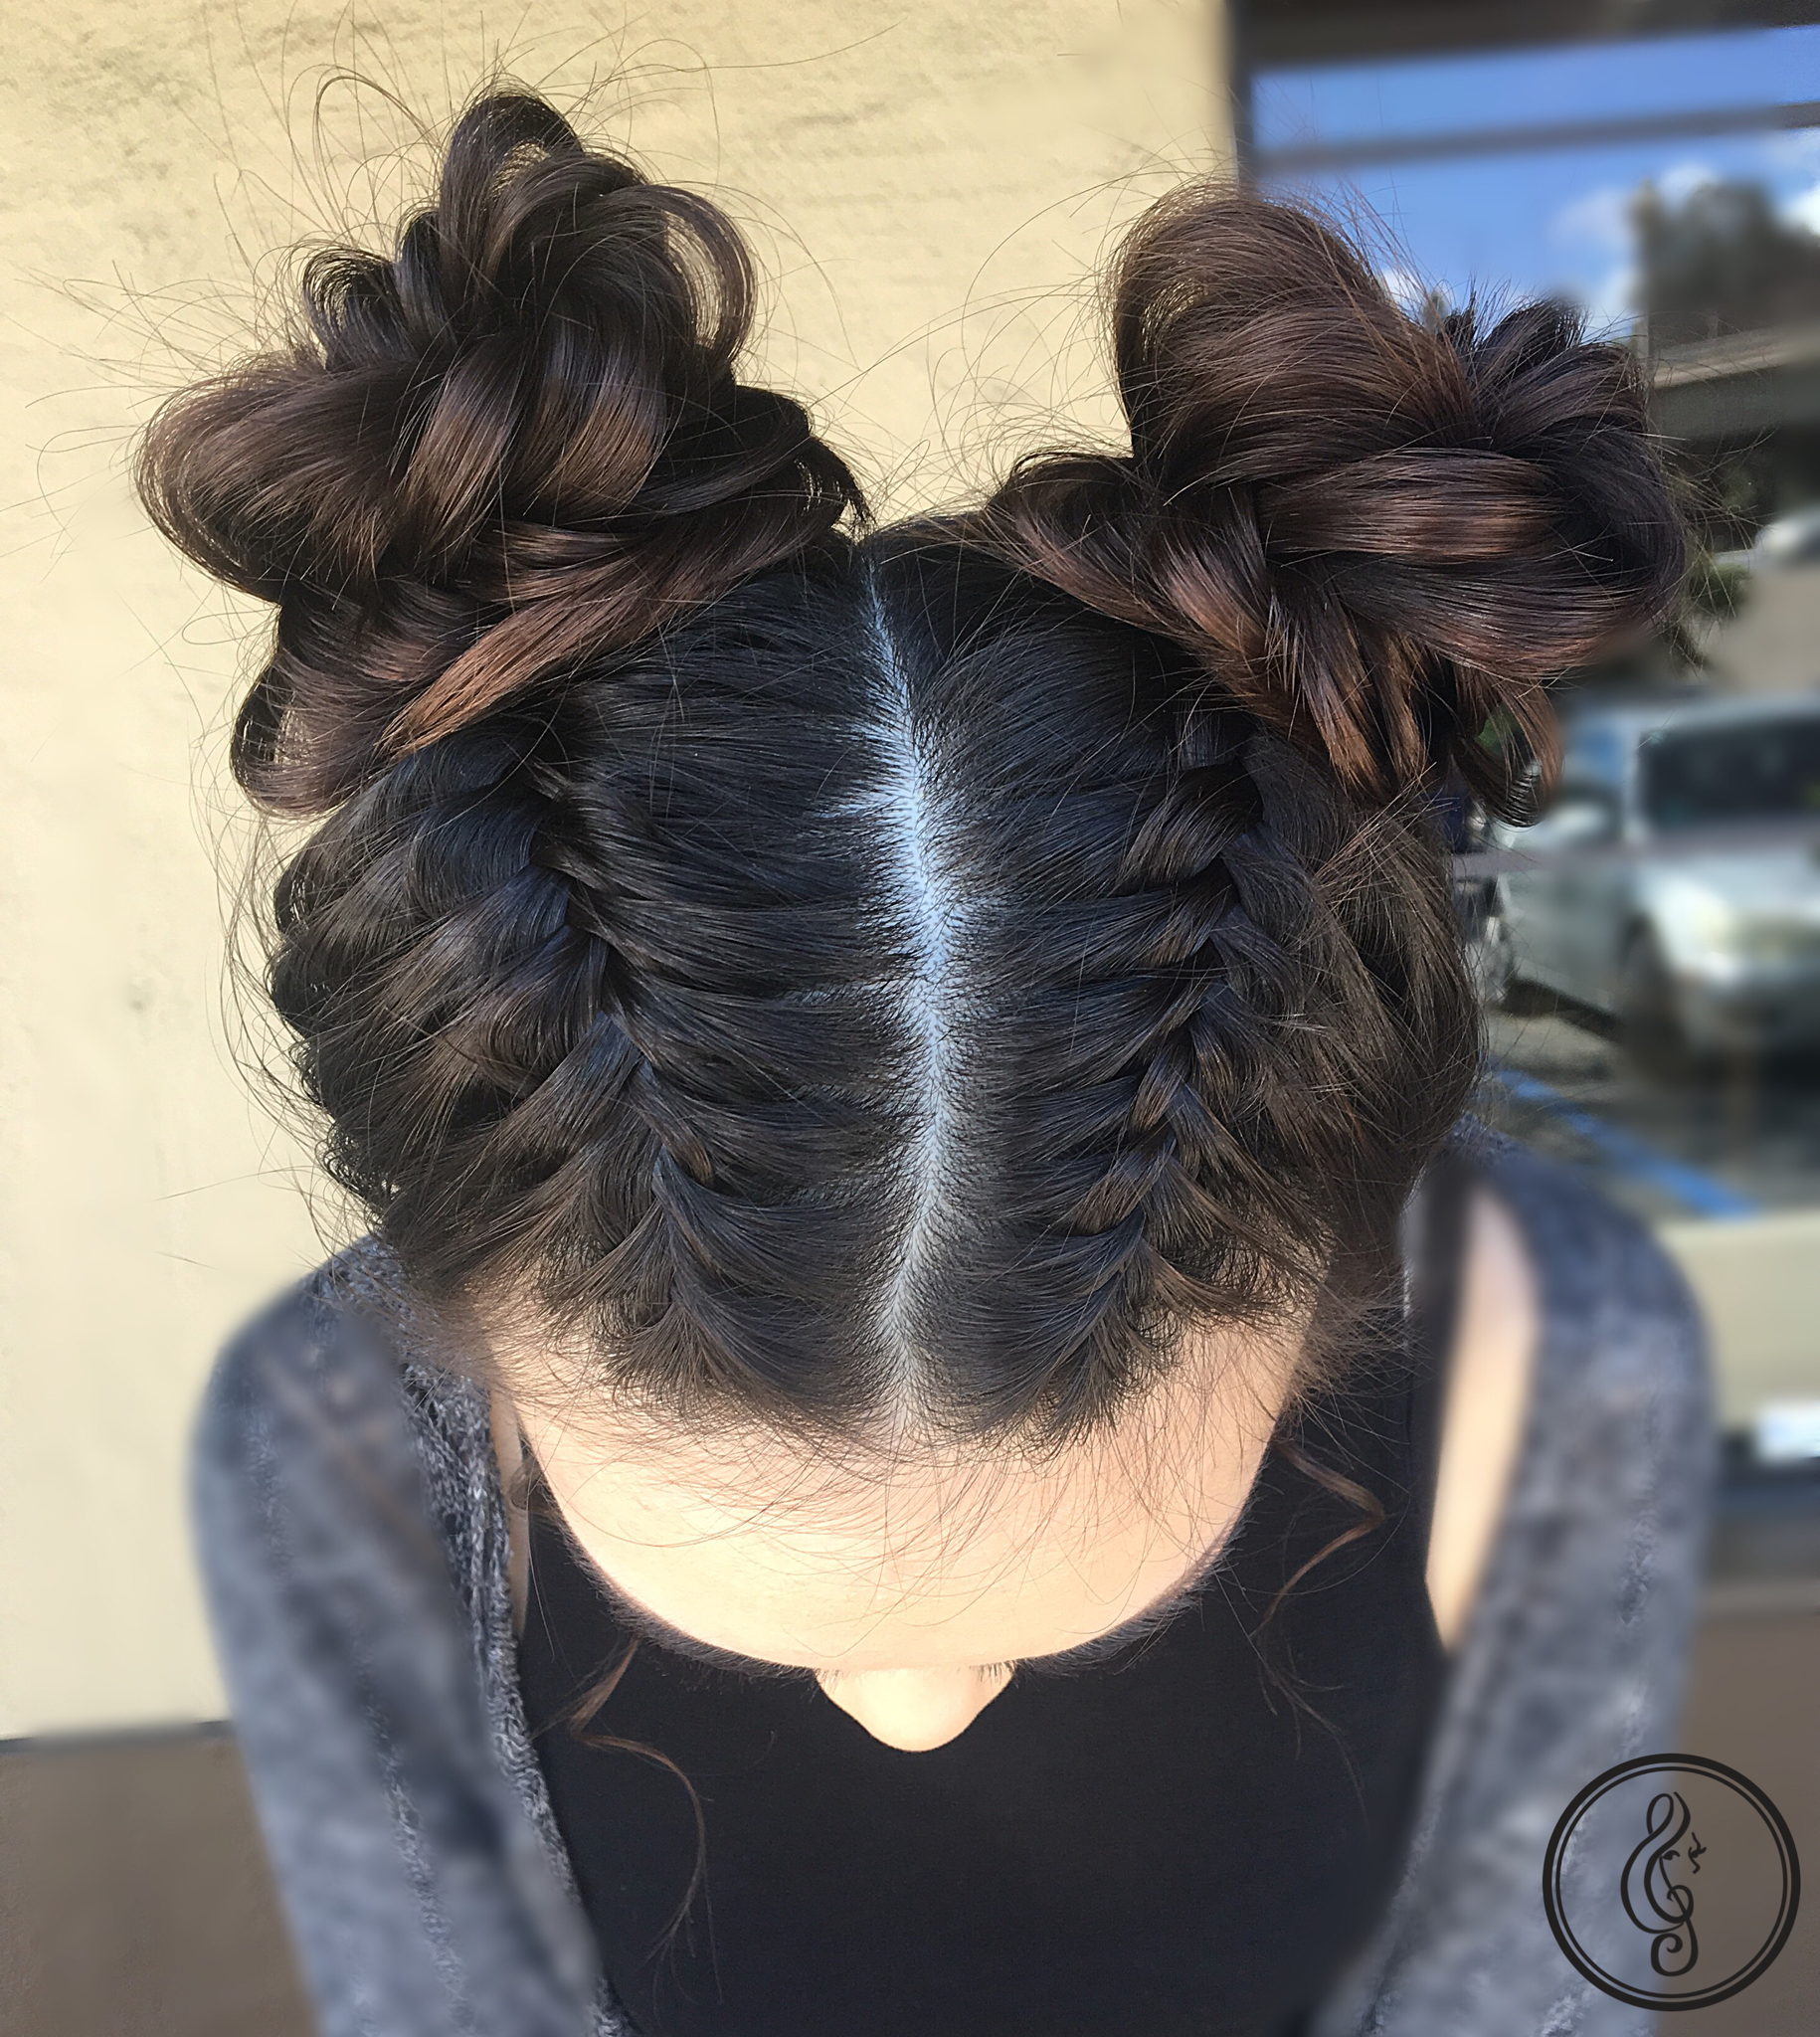 Braids And Space Buns Hair Styles Curly Hair Styles Naturally Braided Hairstyles